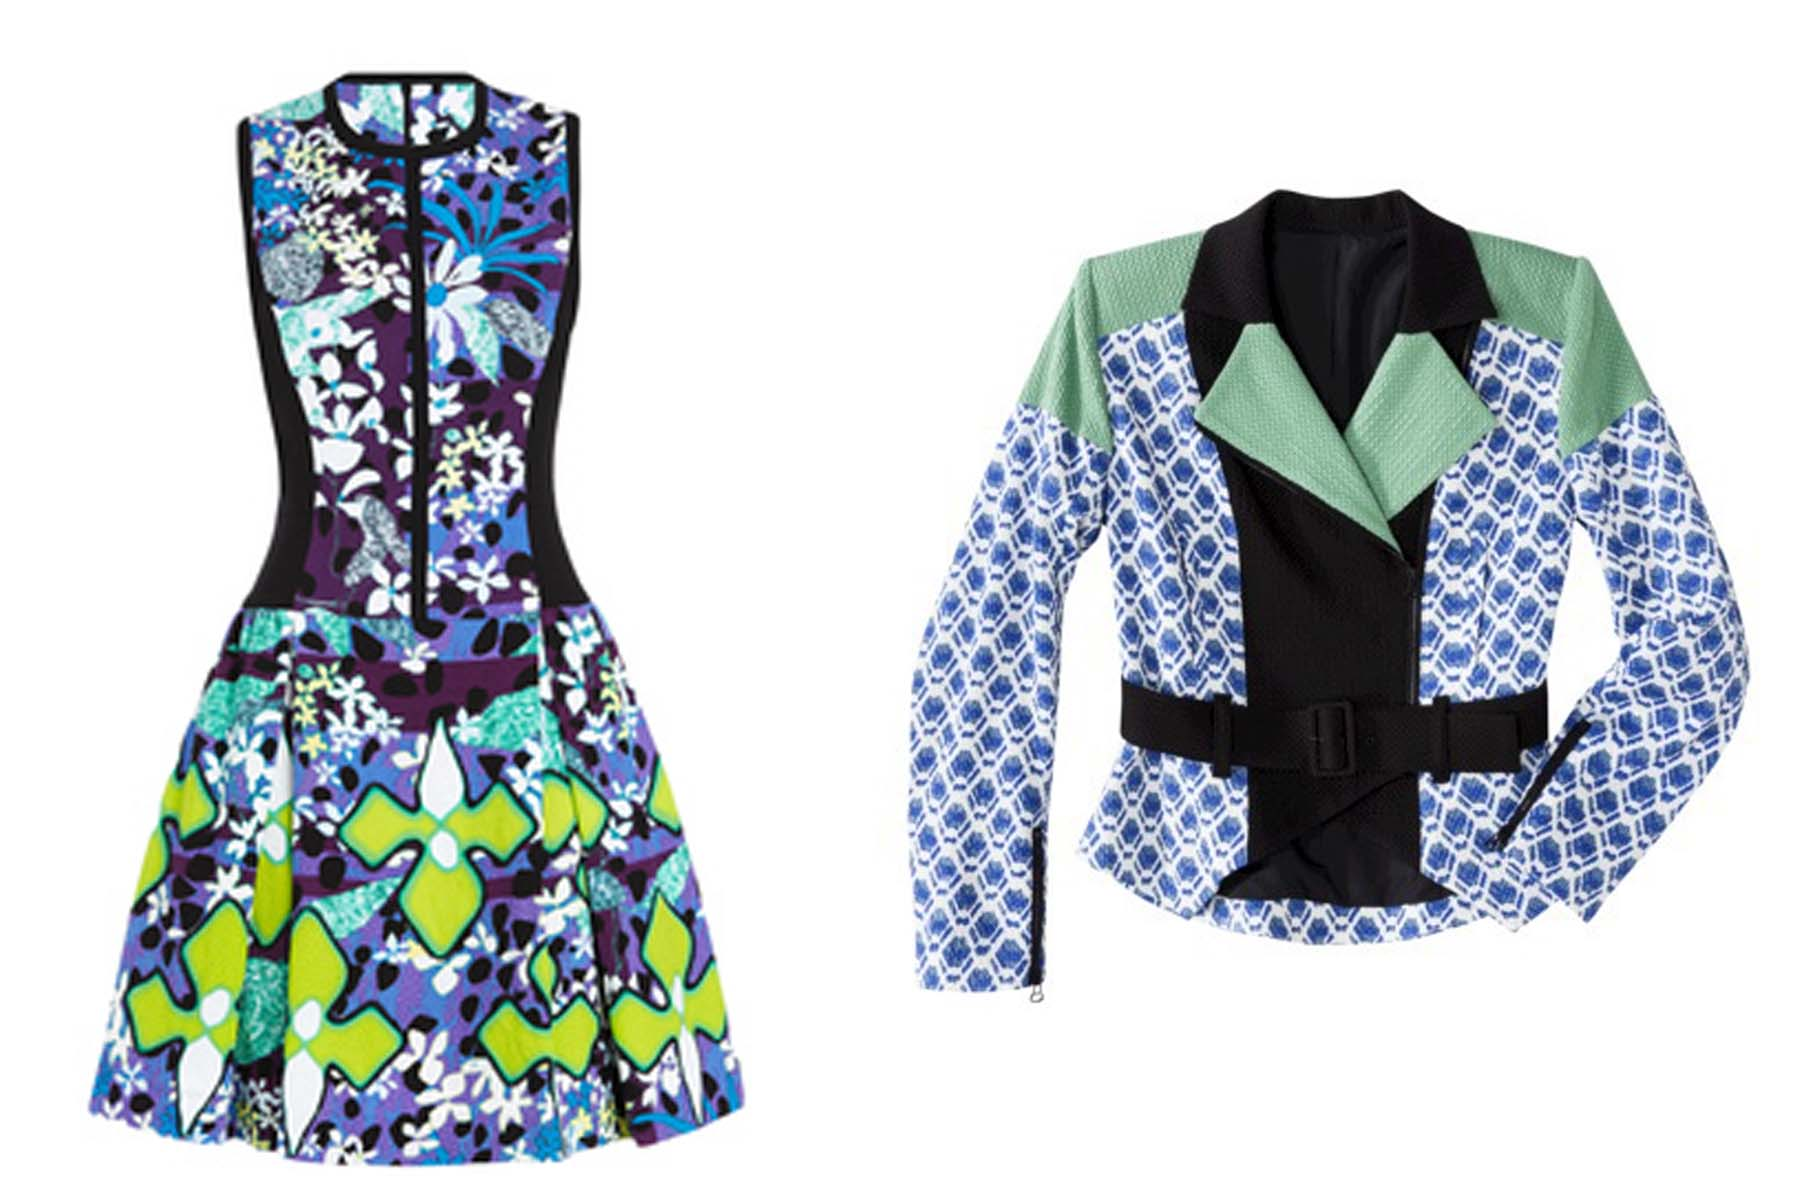 Peter Pilotto for Target floral print dress (left) and moto jacket blue netting print(Photos: Target)